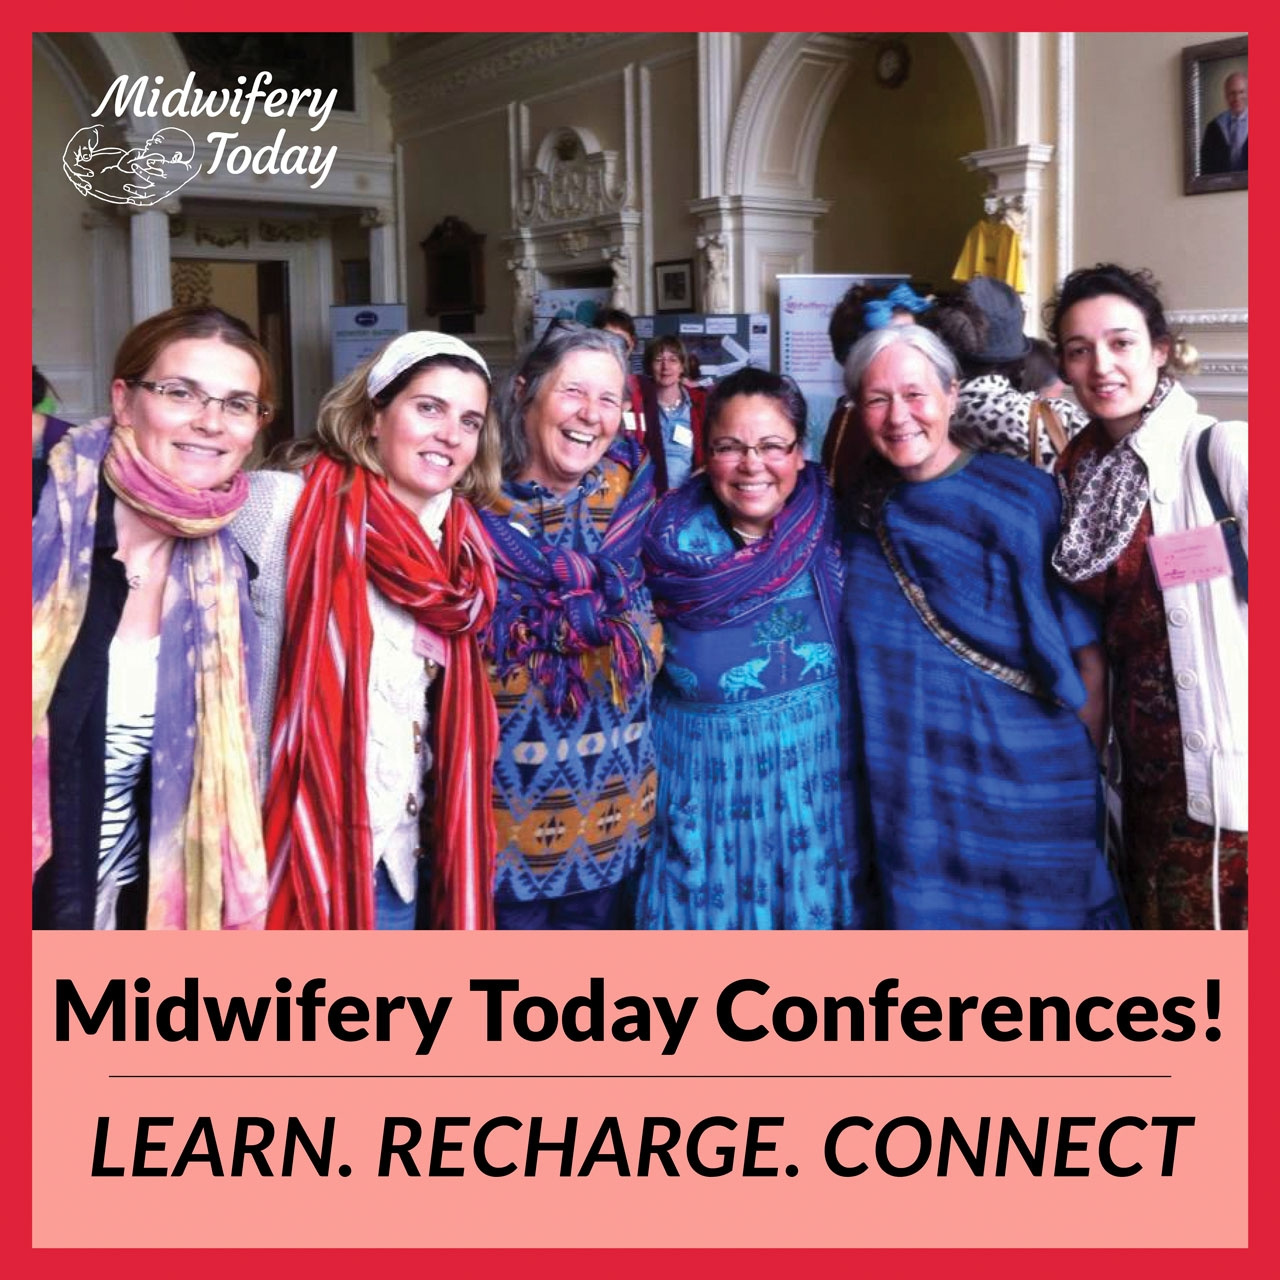 Attend a Midwifery Today Conference